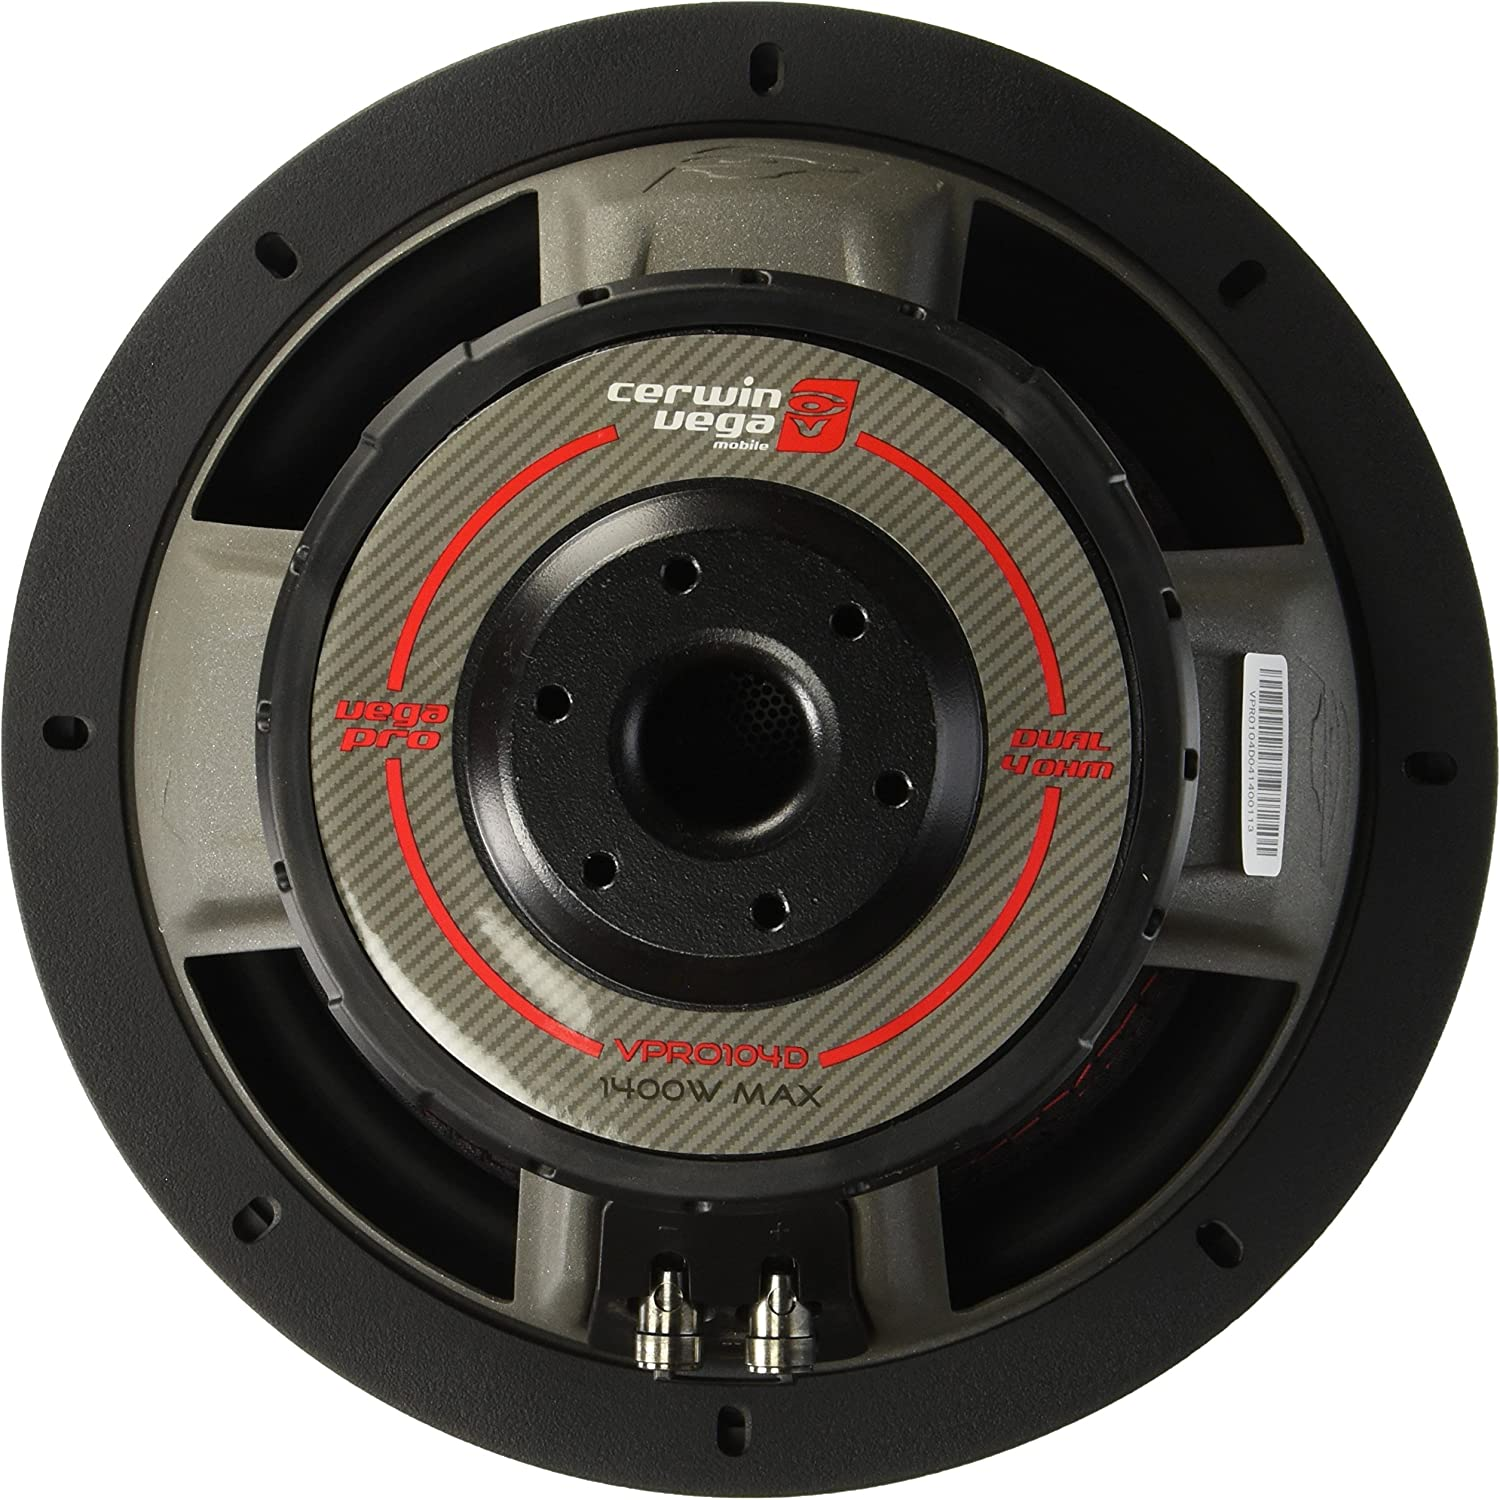 CERWIN VEGA VPRO104D Pro 1400 Watts Max 10-Inch Dual Voice Coil Subwoofer 4 Ohms//700 Watts Power Handling